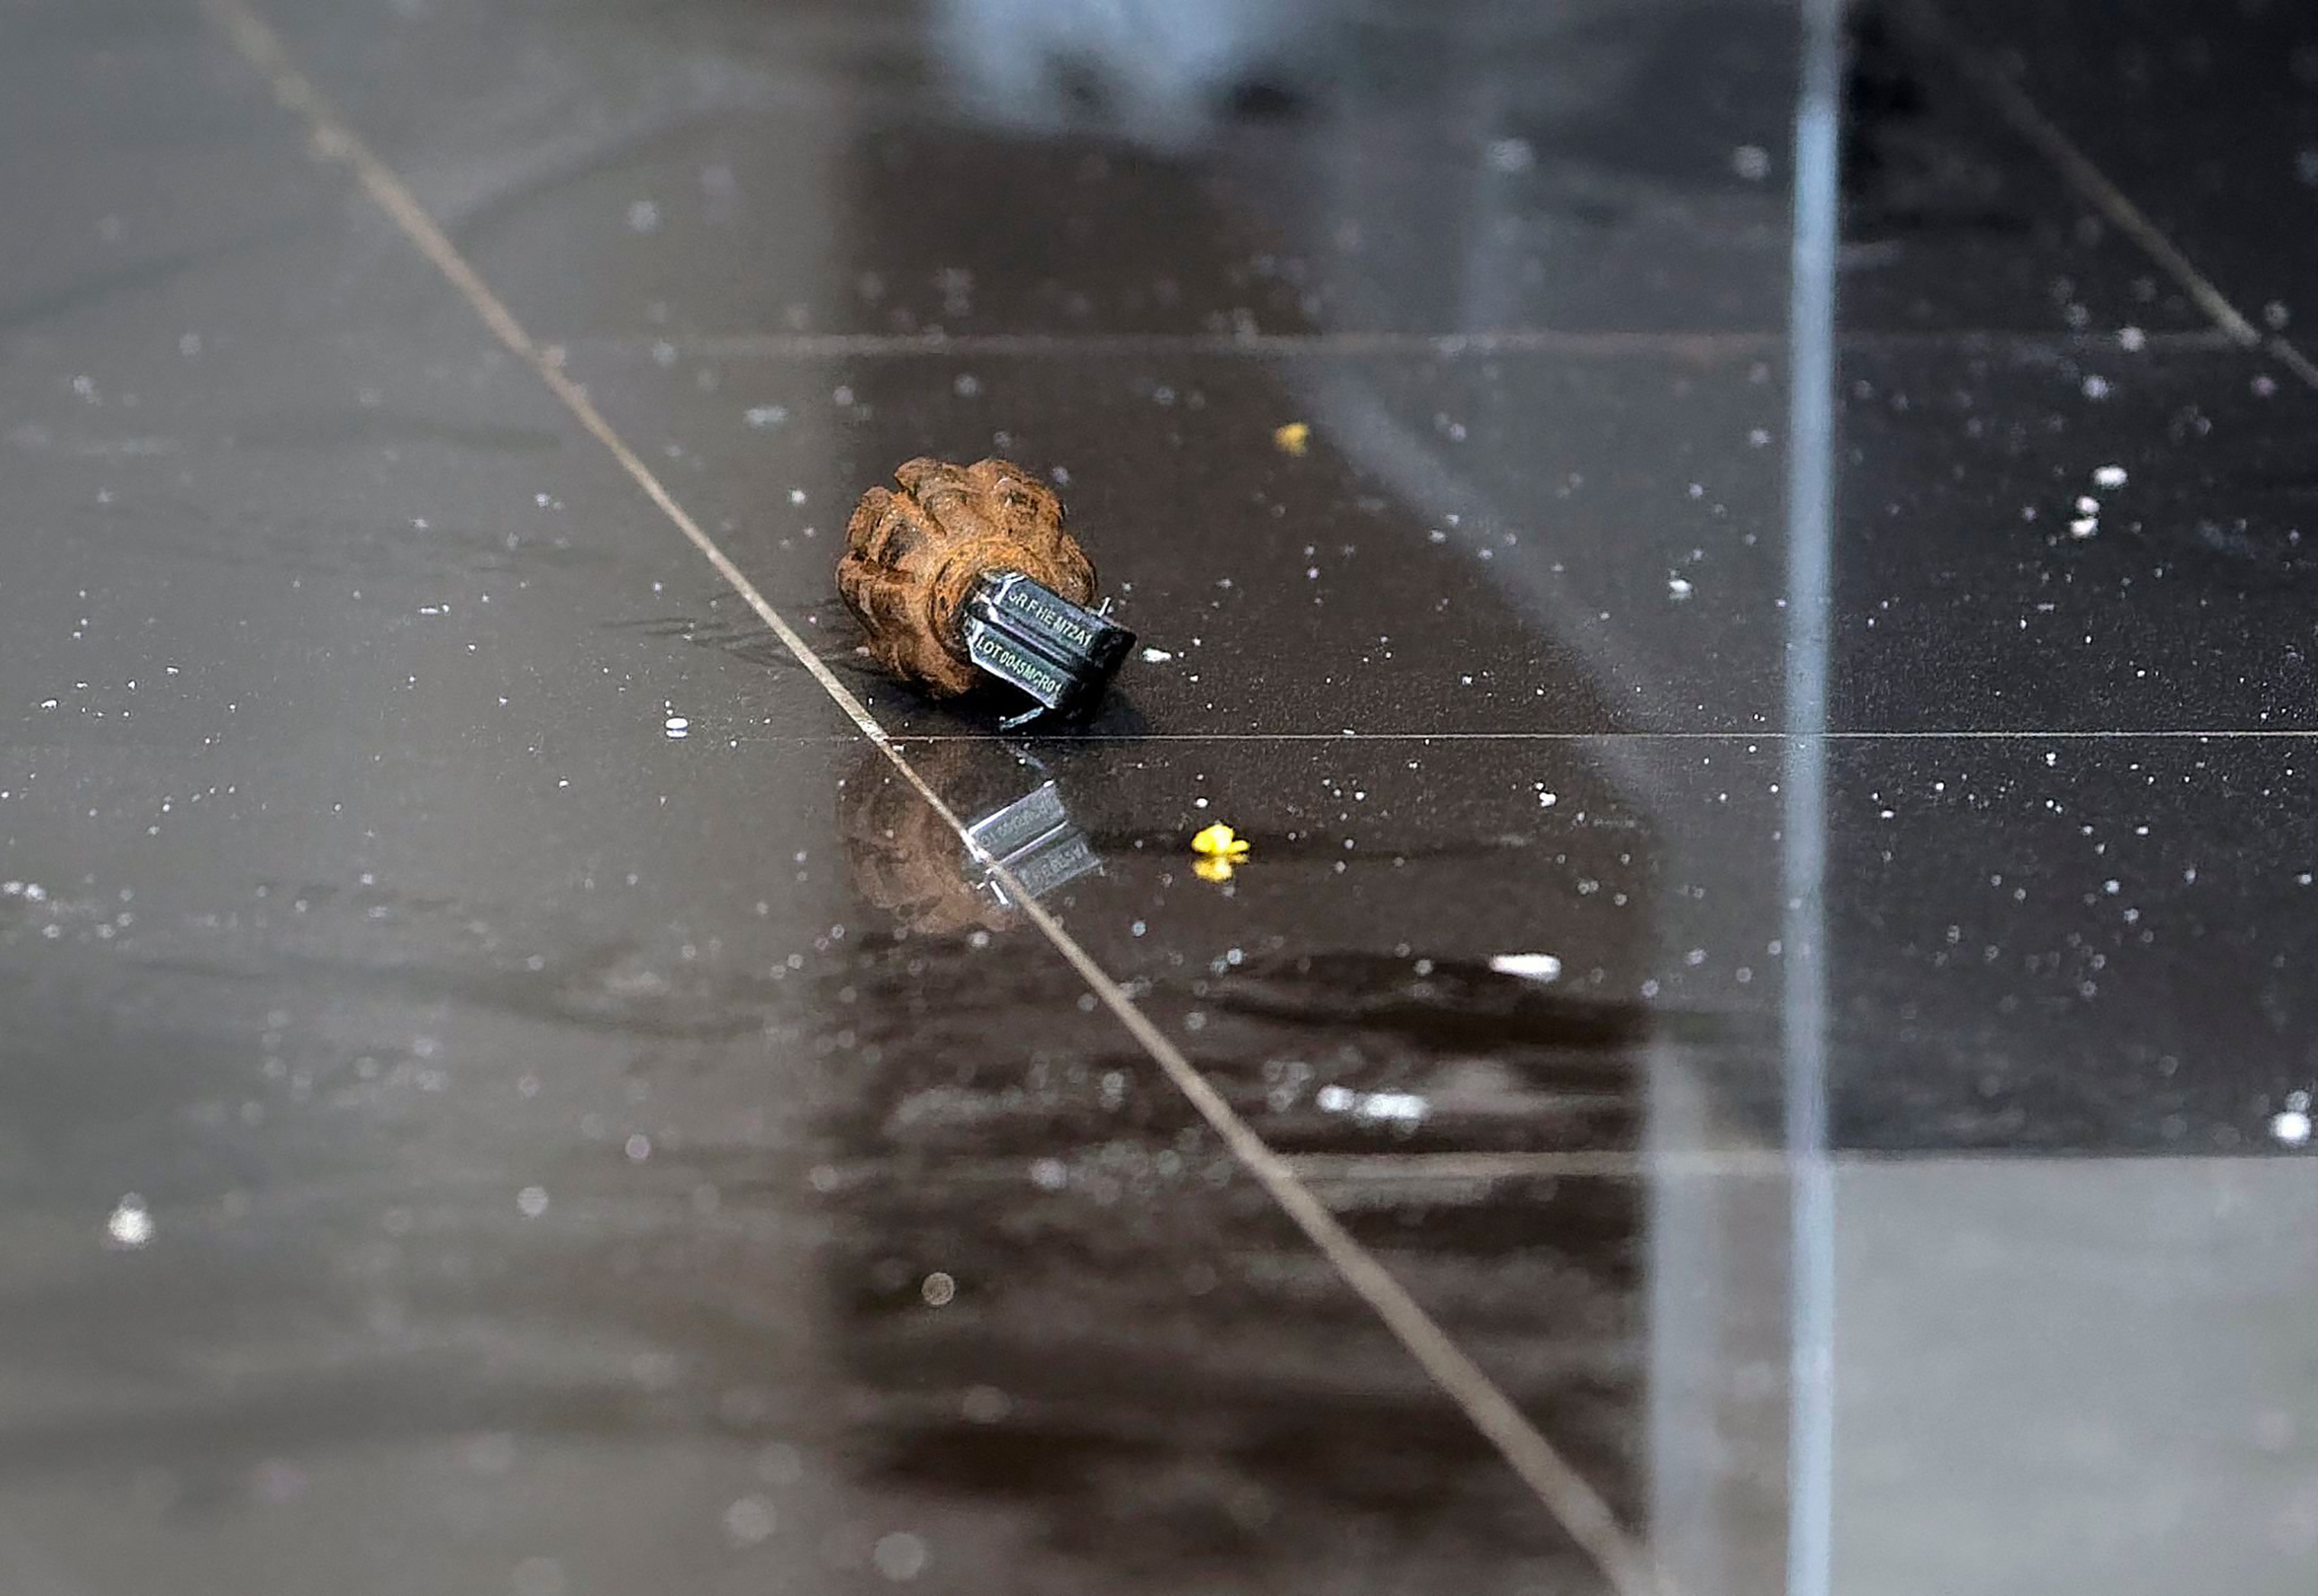 An unexploded grenade lies in a hallway of an upscale hotel complex.